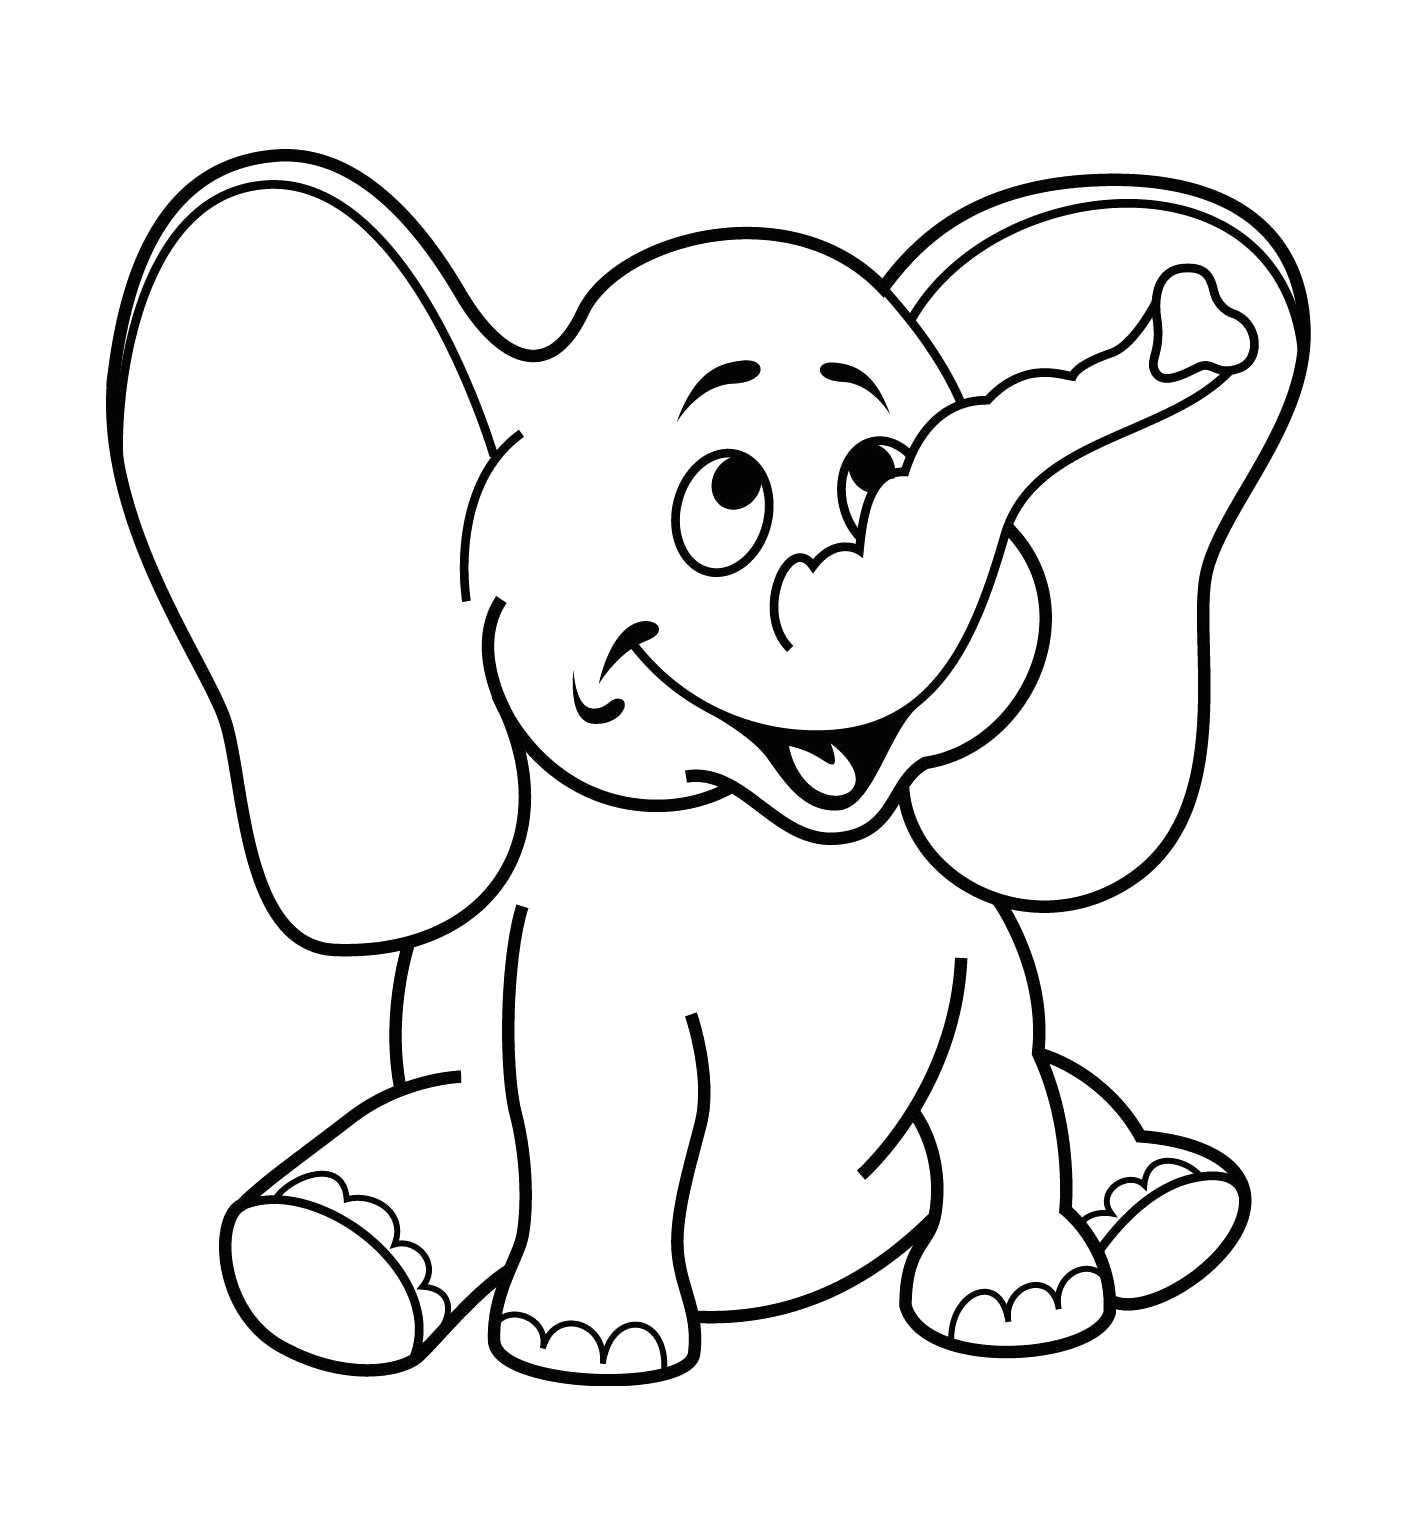 Free Coloring Pages for Two Year Olds Free Printable Coloring Pages for 2 Year Olds